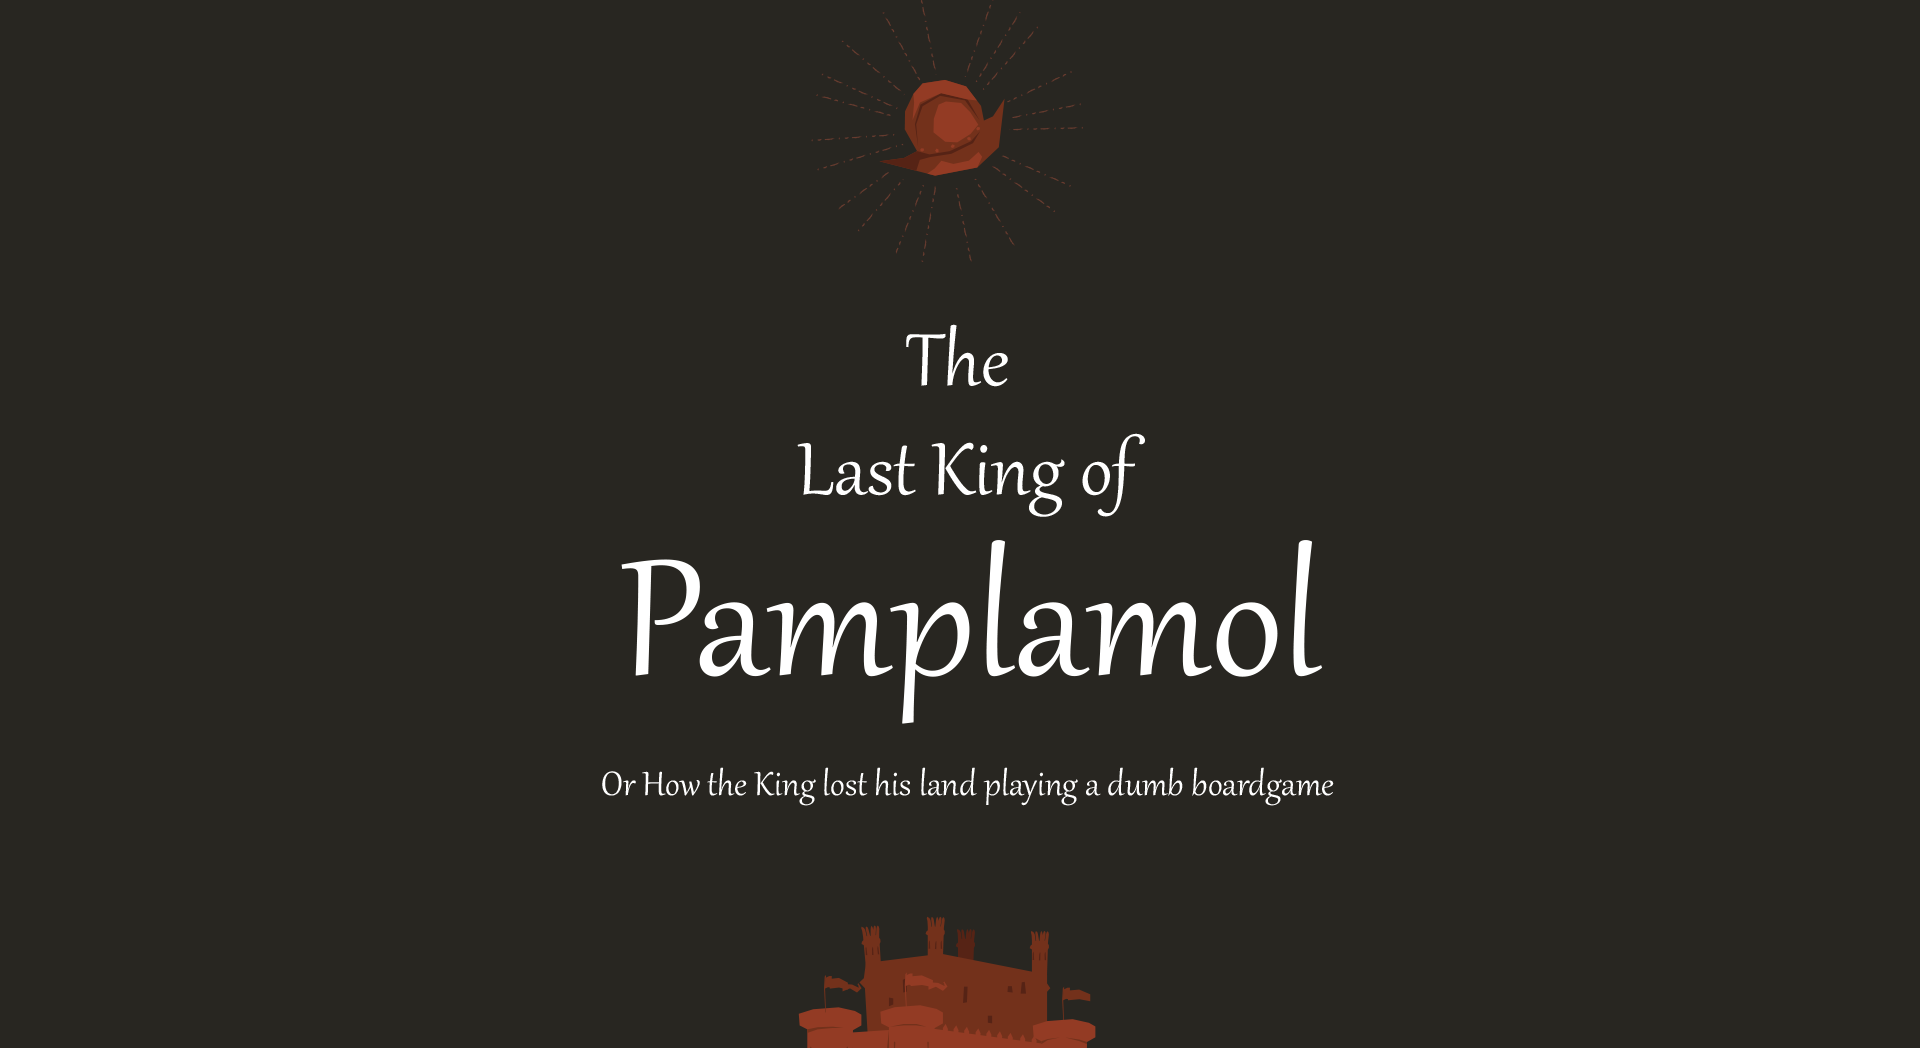 The Last King Of Pamplamol